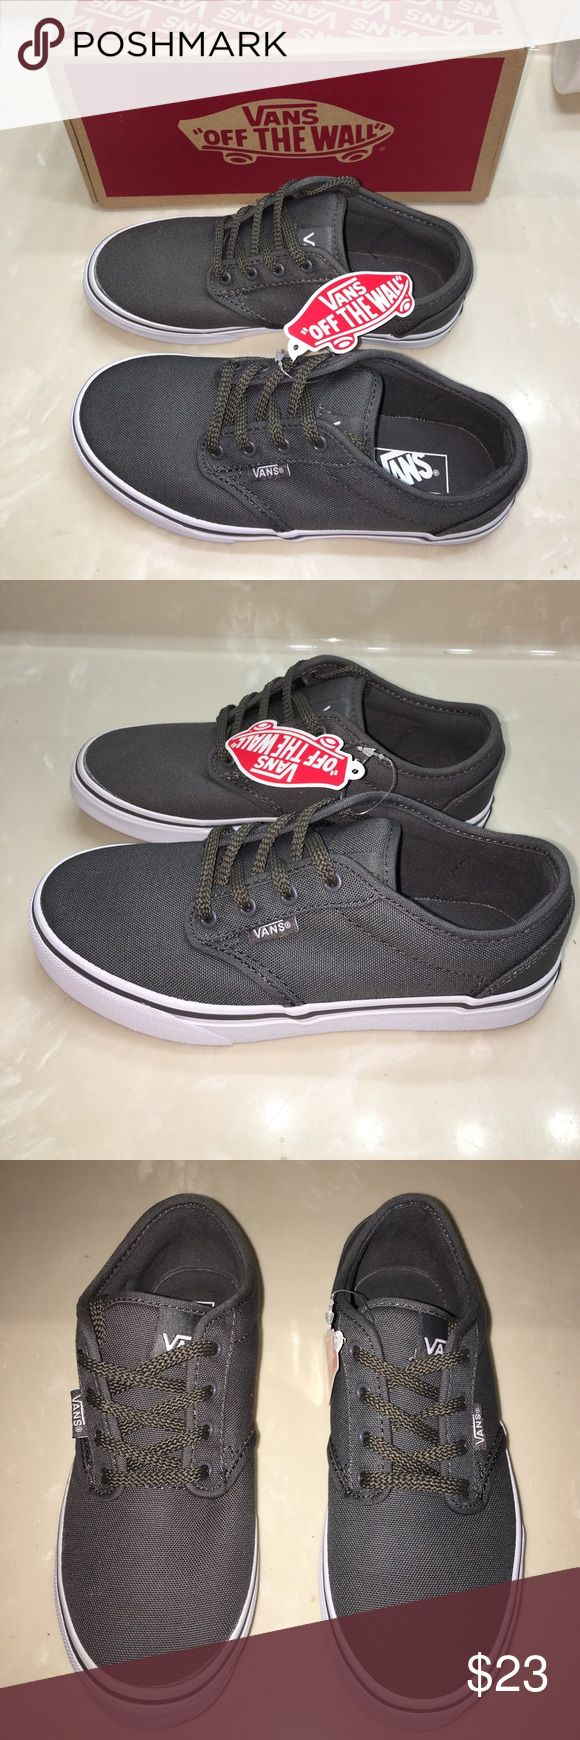 New in box boys gray Vans tennis shoes sneakers 3 New in box boys gray Vans tennis shoes sneakers 3. Price is firm as they are brand new please no offers Vans Shoes Sneakers